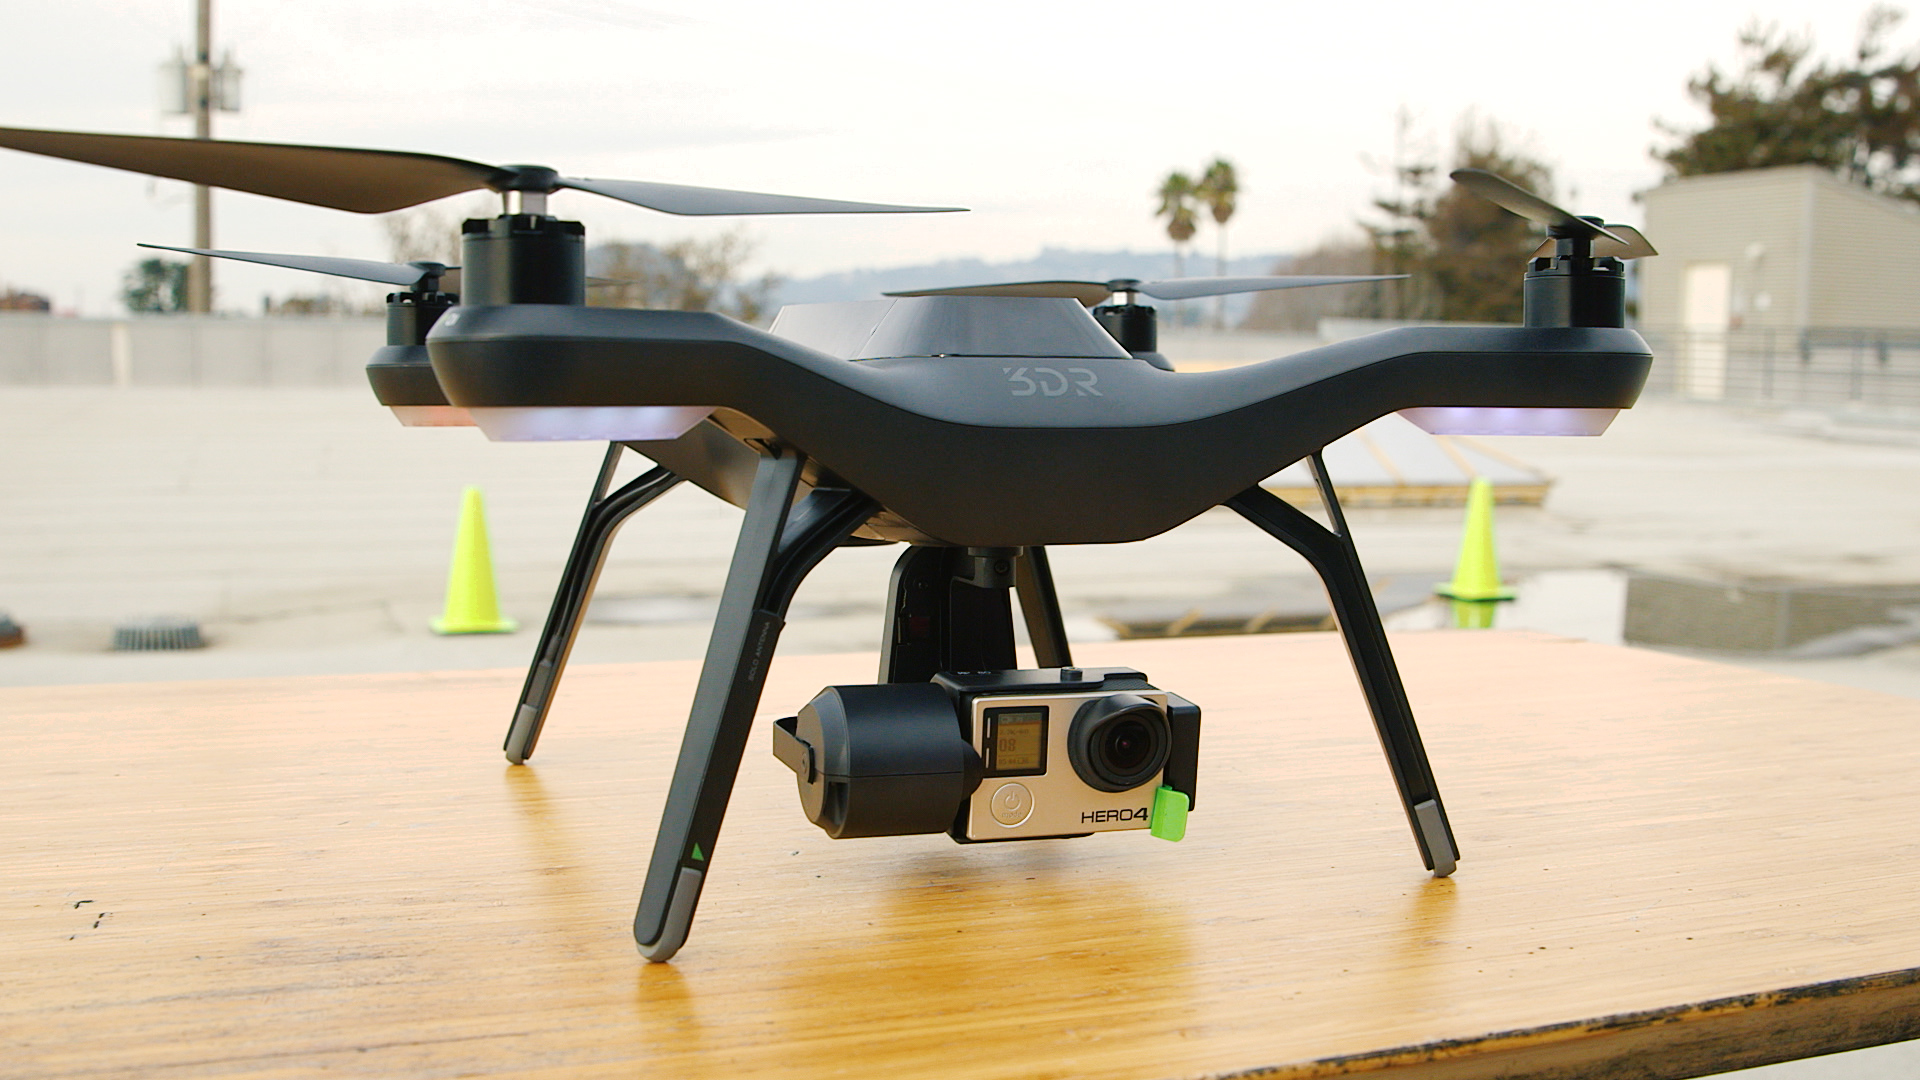 Video: 3DR Solo drone flies and films for you